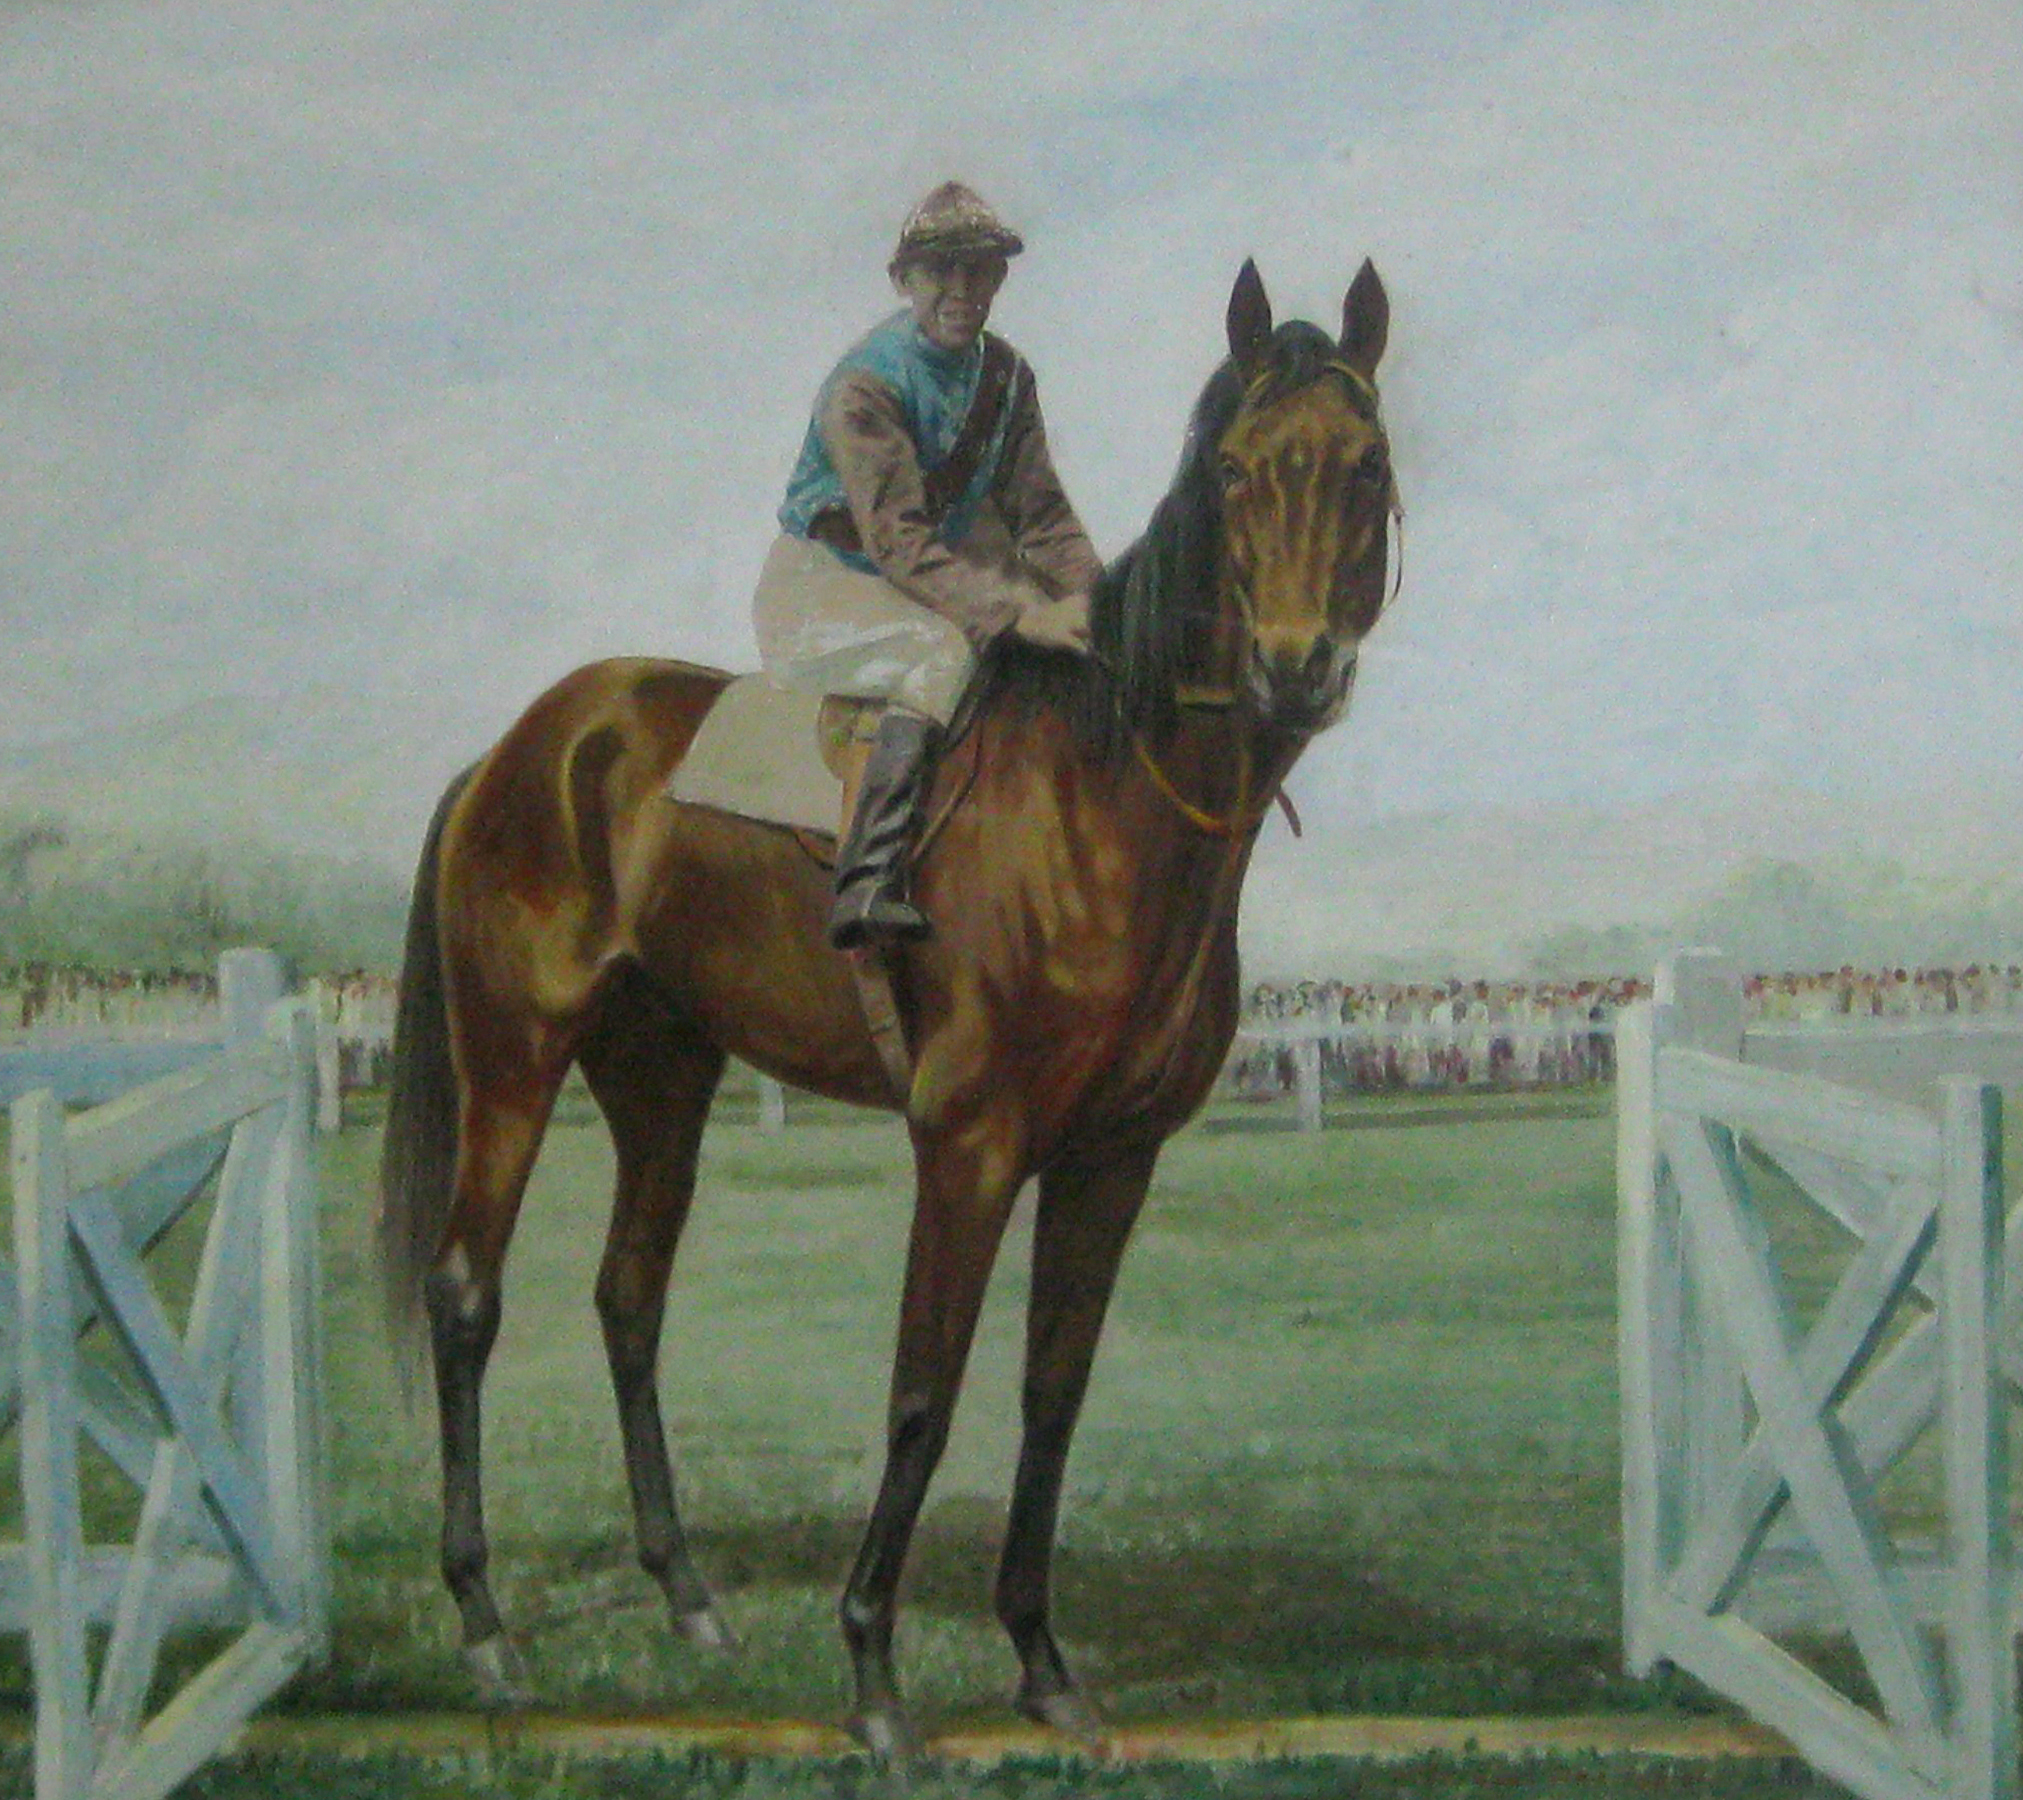 The Famous Horse Ginzano oil painting done 1928 by London Art Studio, formerly owned by Ganapathy Pillai - this horse was a Gold Cup winner ridden by a Dutch jockey